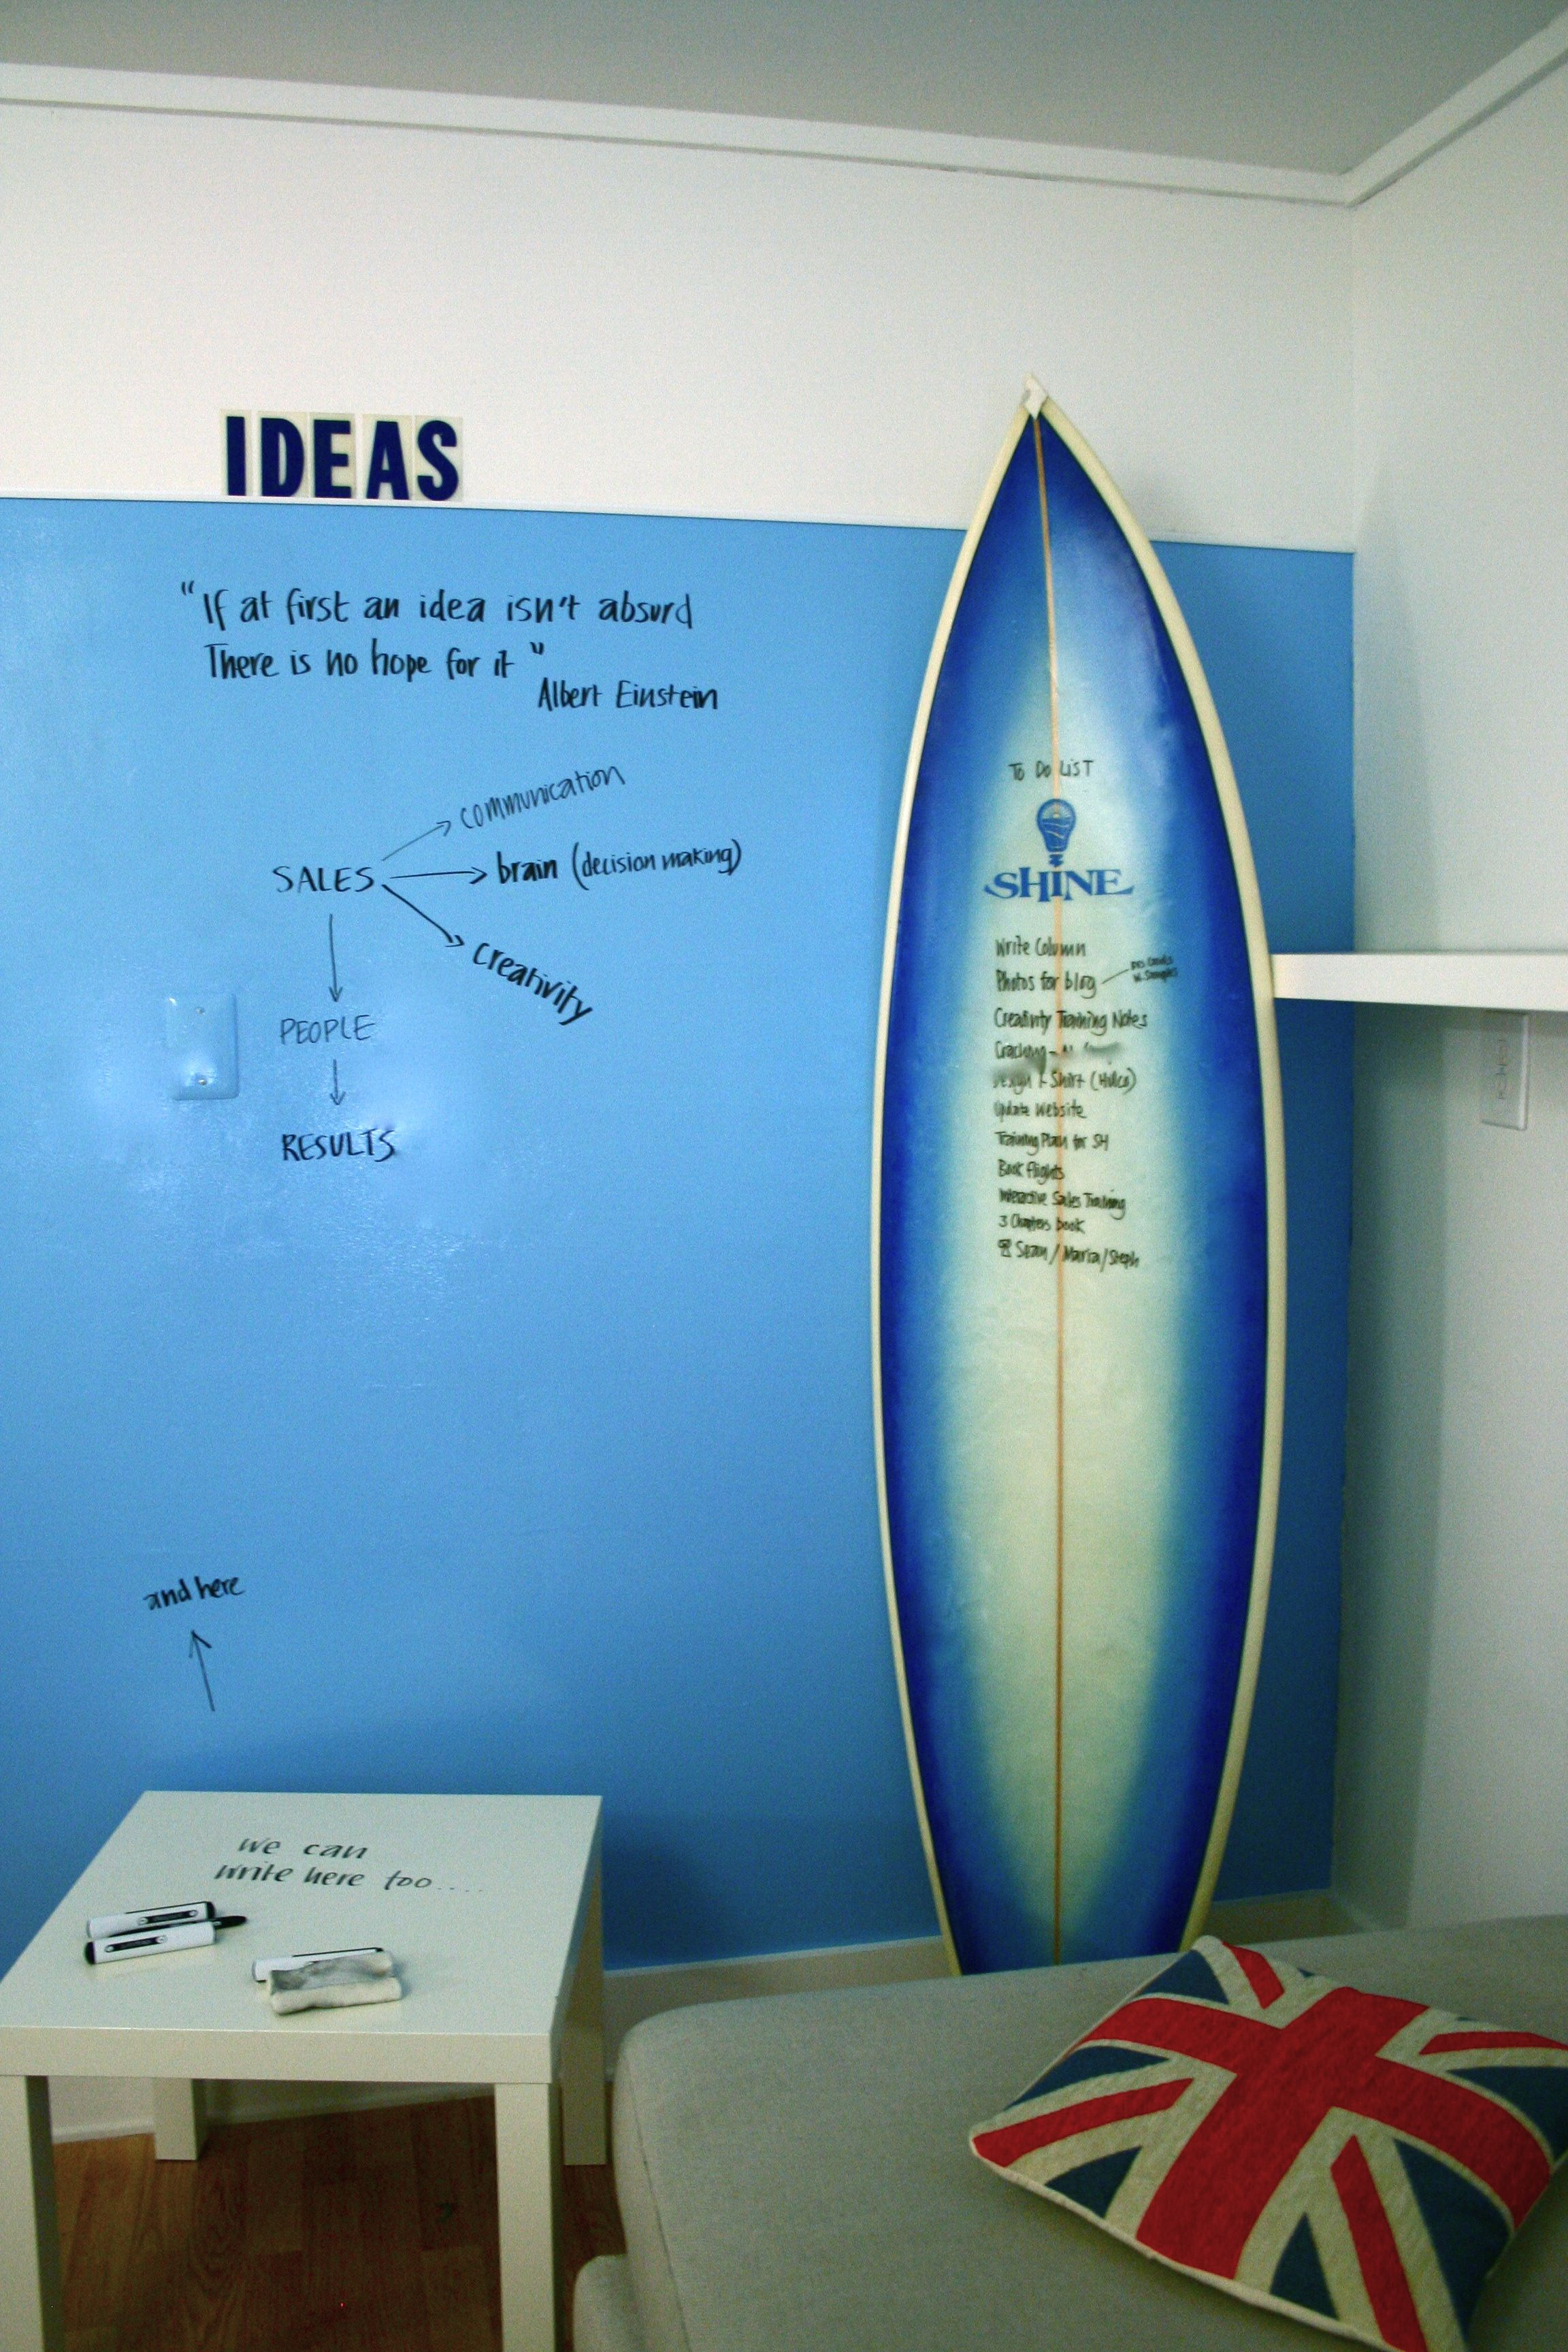 Colored Wall With Clear Dry Erase Paint So You Can Write On The